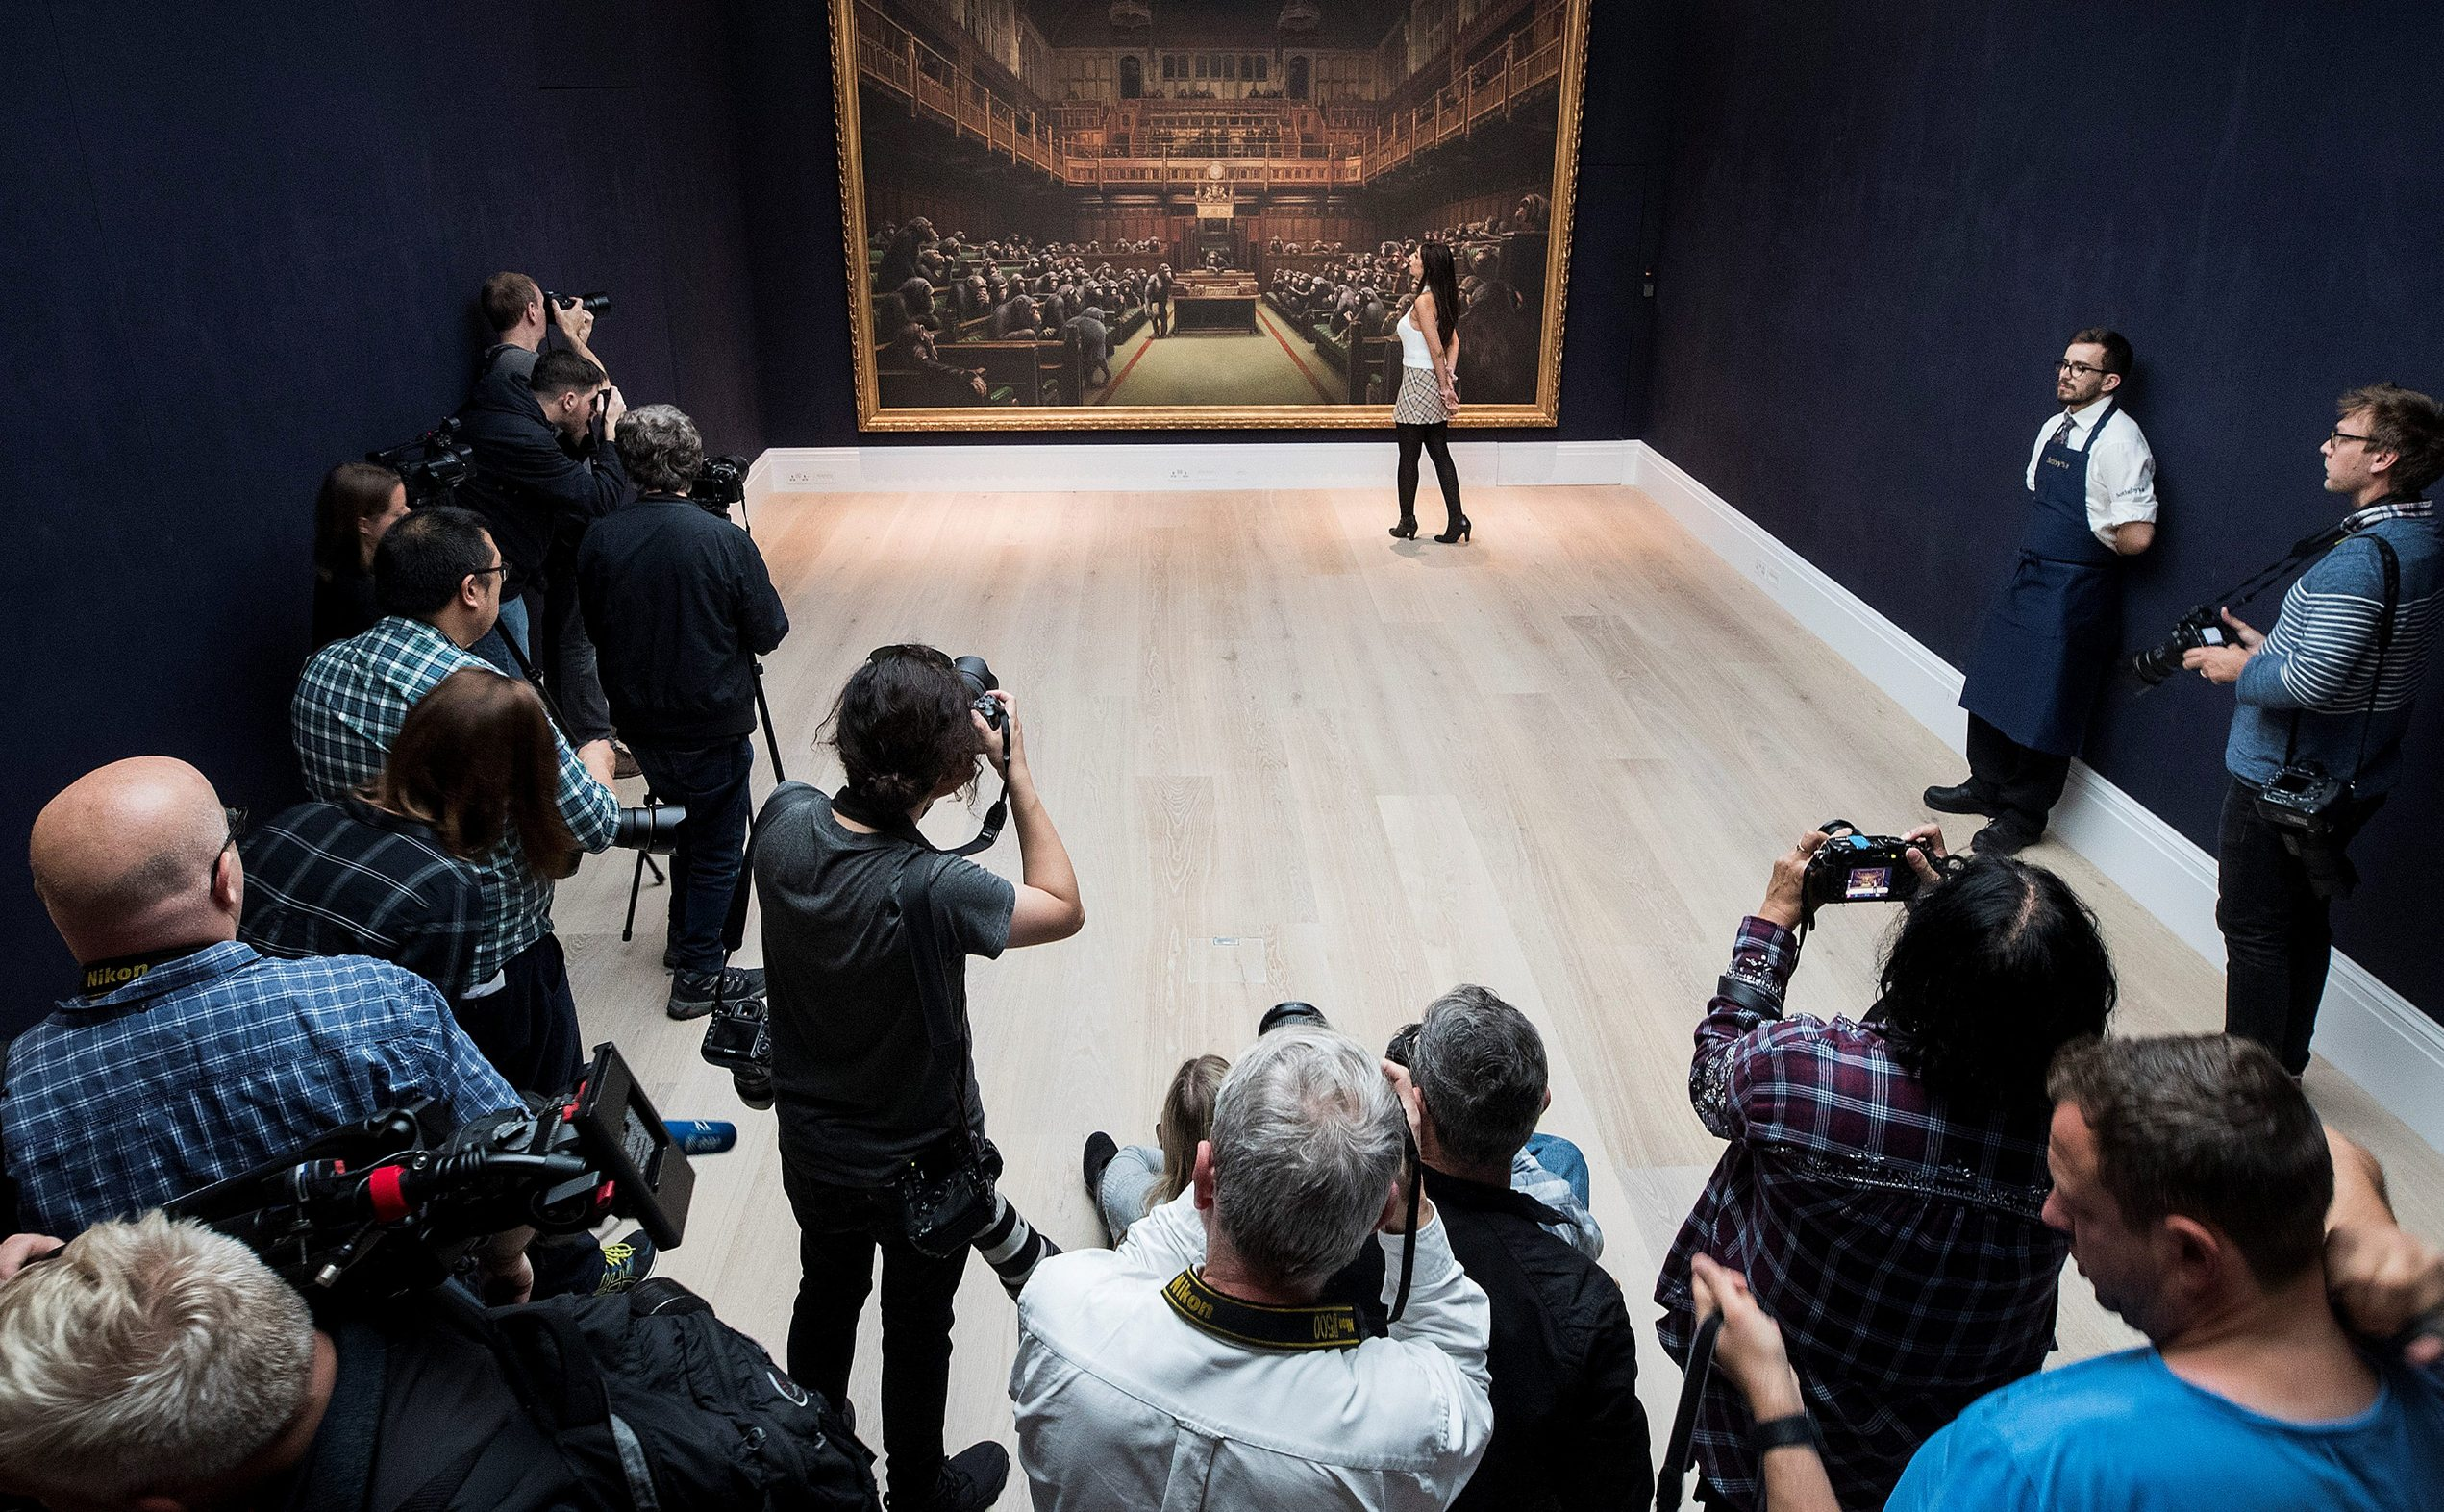 Members of the media take photos as a Sotheby's staff poses for a photograph with Banksy's 'Devolved Parliament' which has an estimated value of 1.5-2 million British pounds in a forthcoming sale in London, Britain September 27, 2019. REUTERS/Simon Dawson